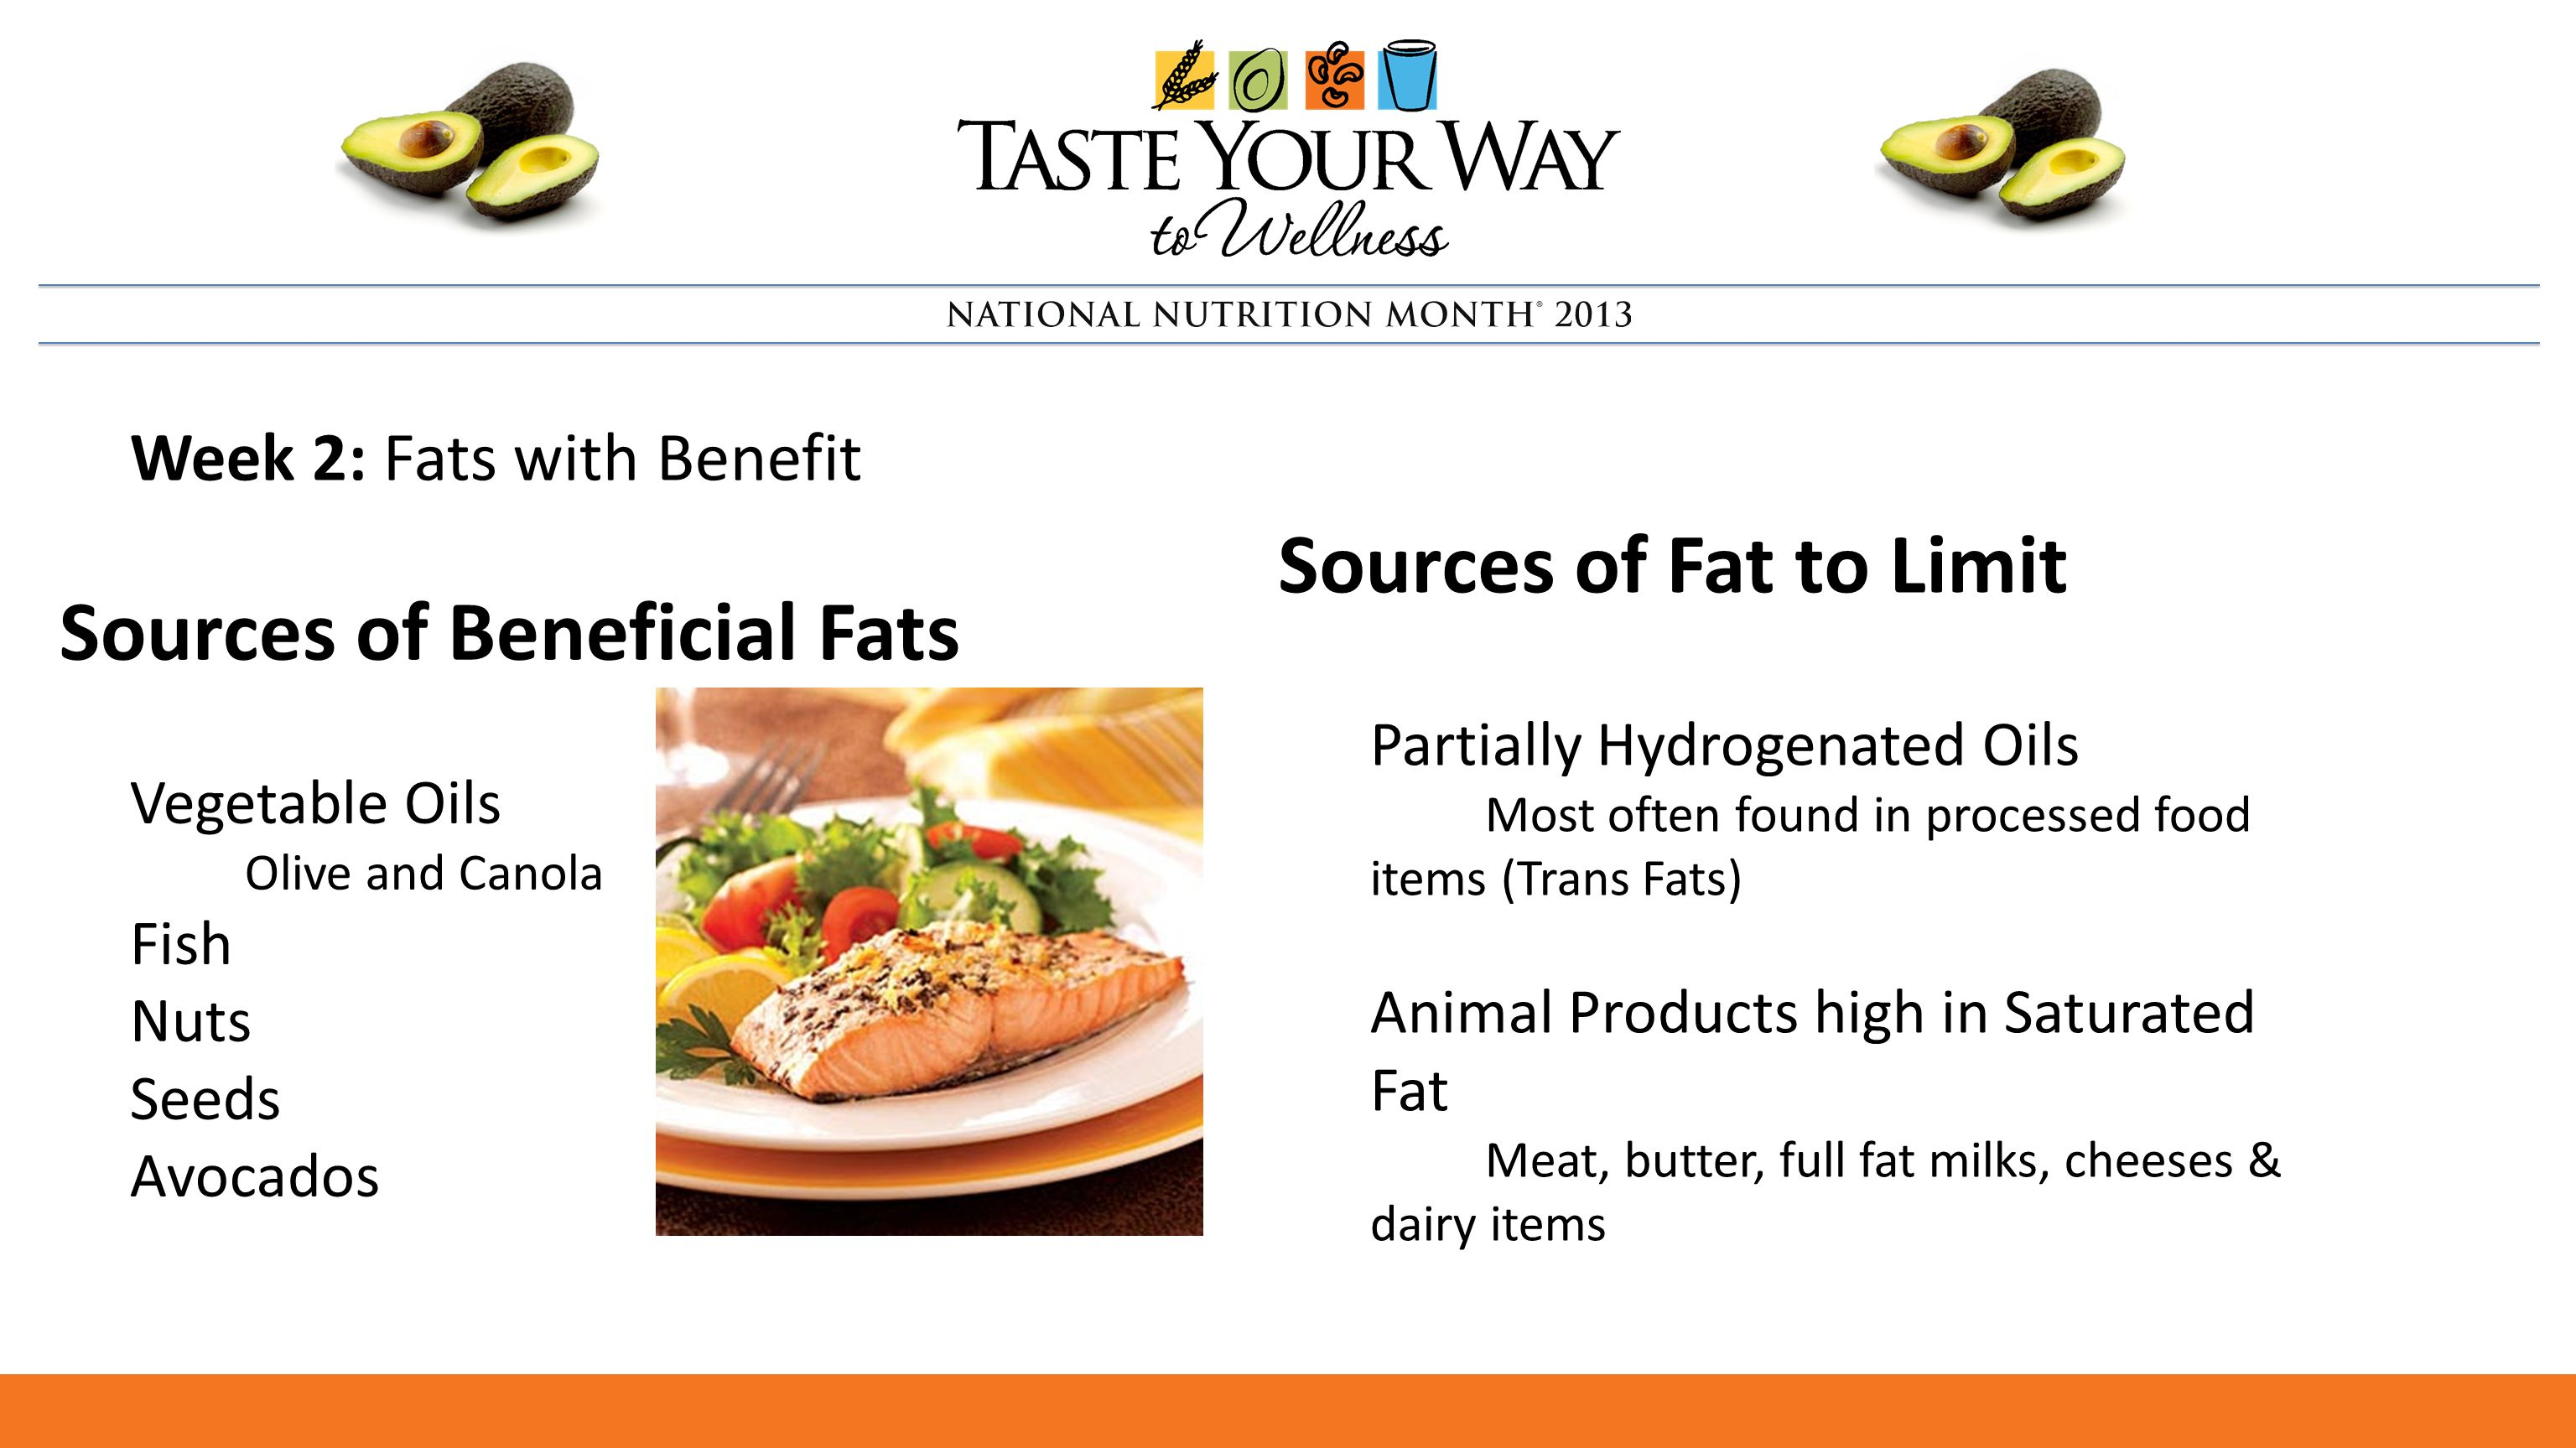 Plating up a healthier you ppt download for Fish oils are a good dietary source of